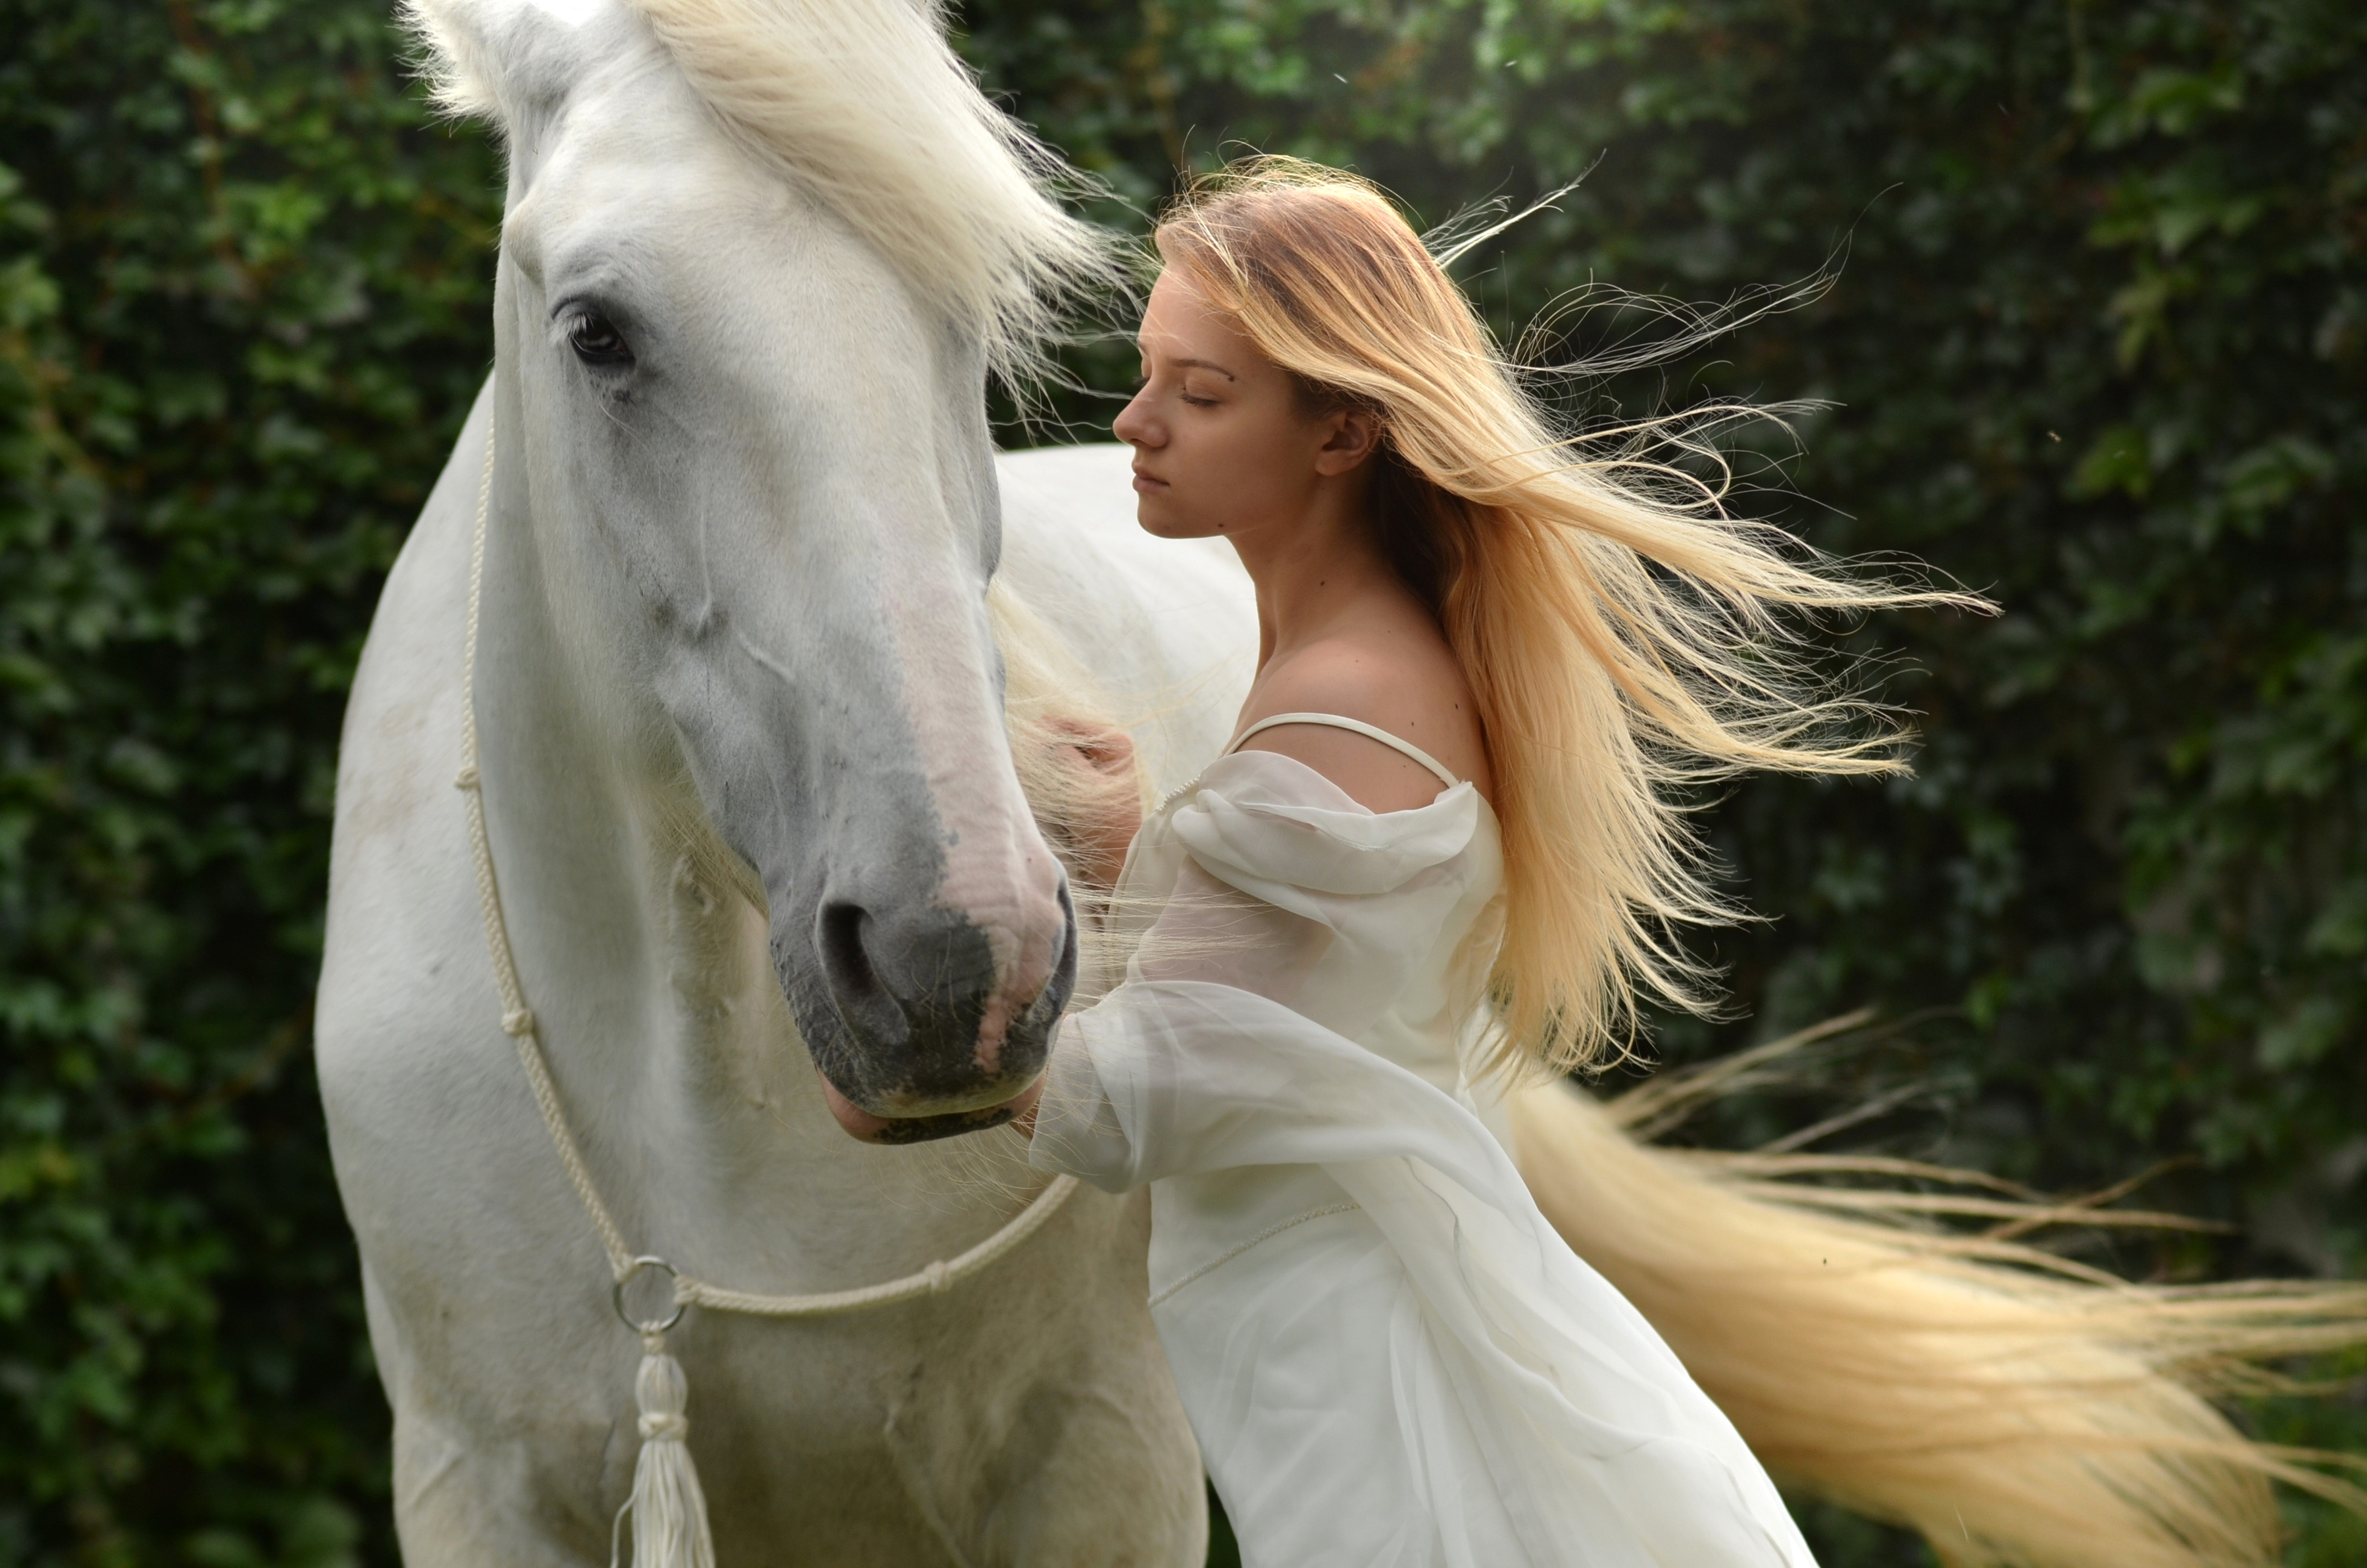 Girl In White Dress With Long Hair With White Horse Image - Free Stock Photo - Public -3627